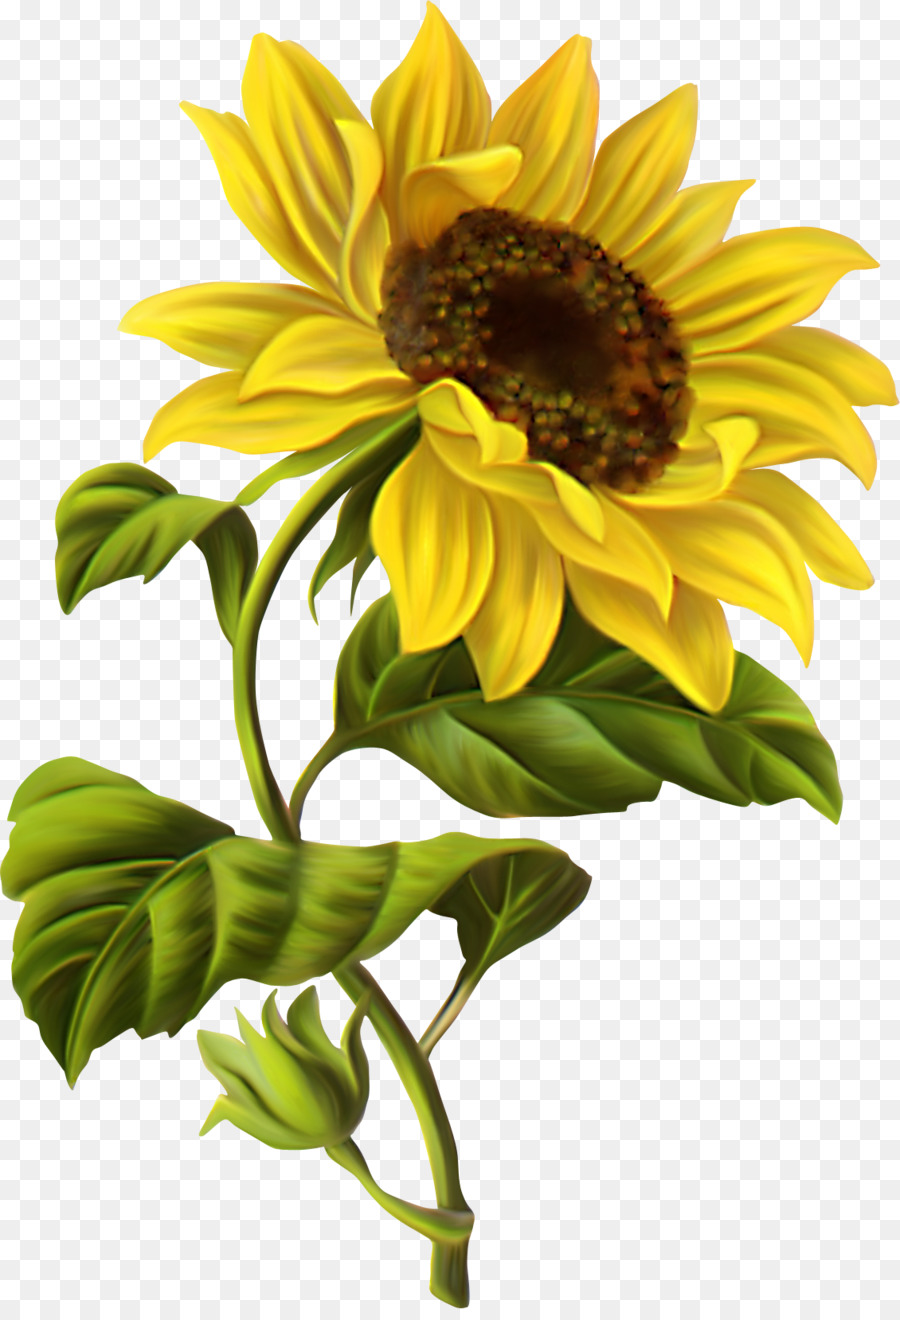 common sunflower drawing botanical illustration watercolor painting